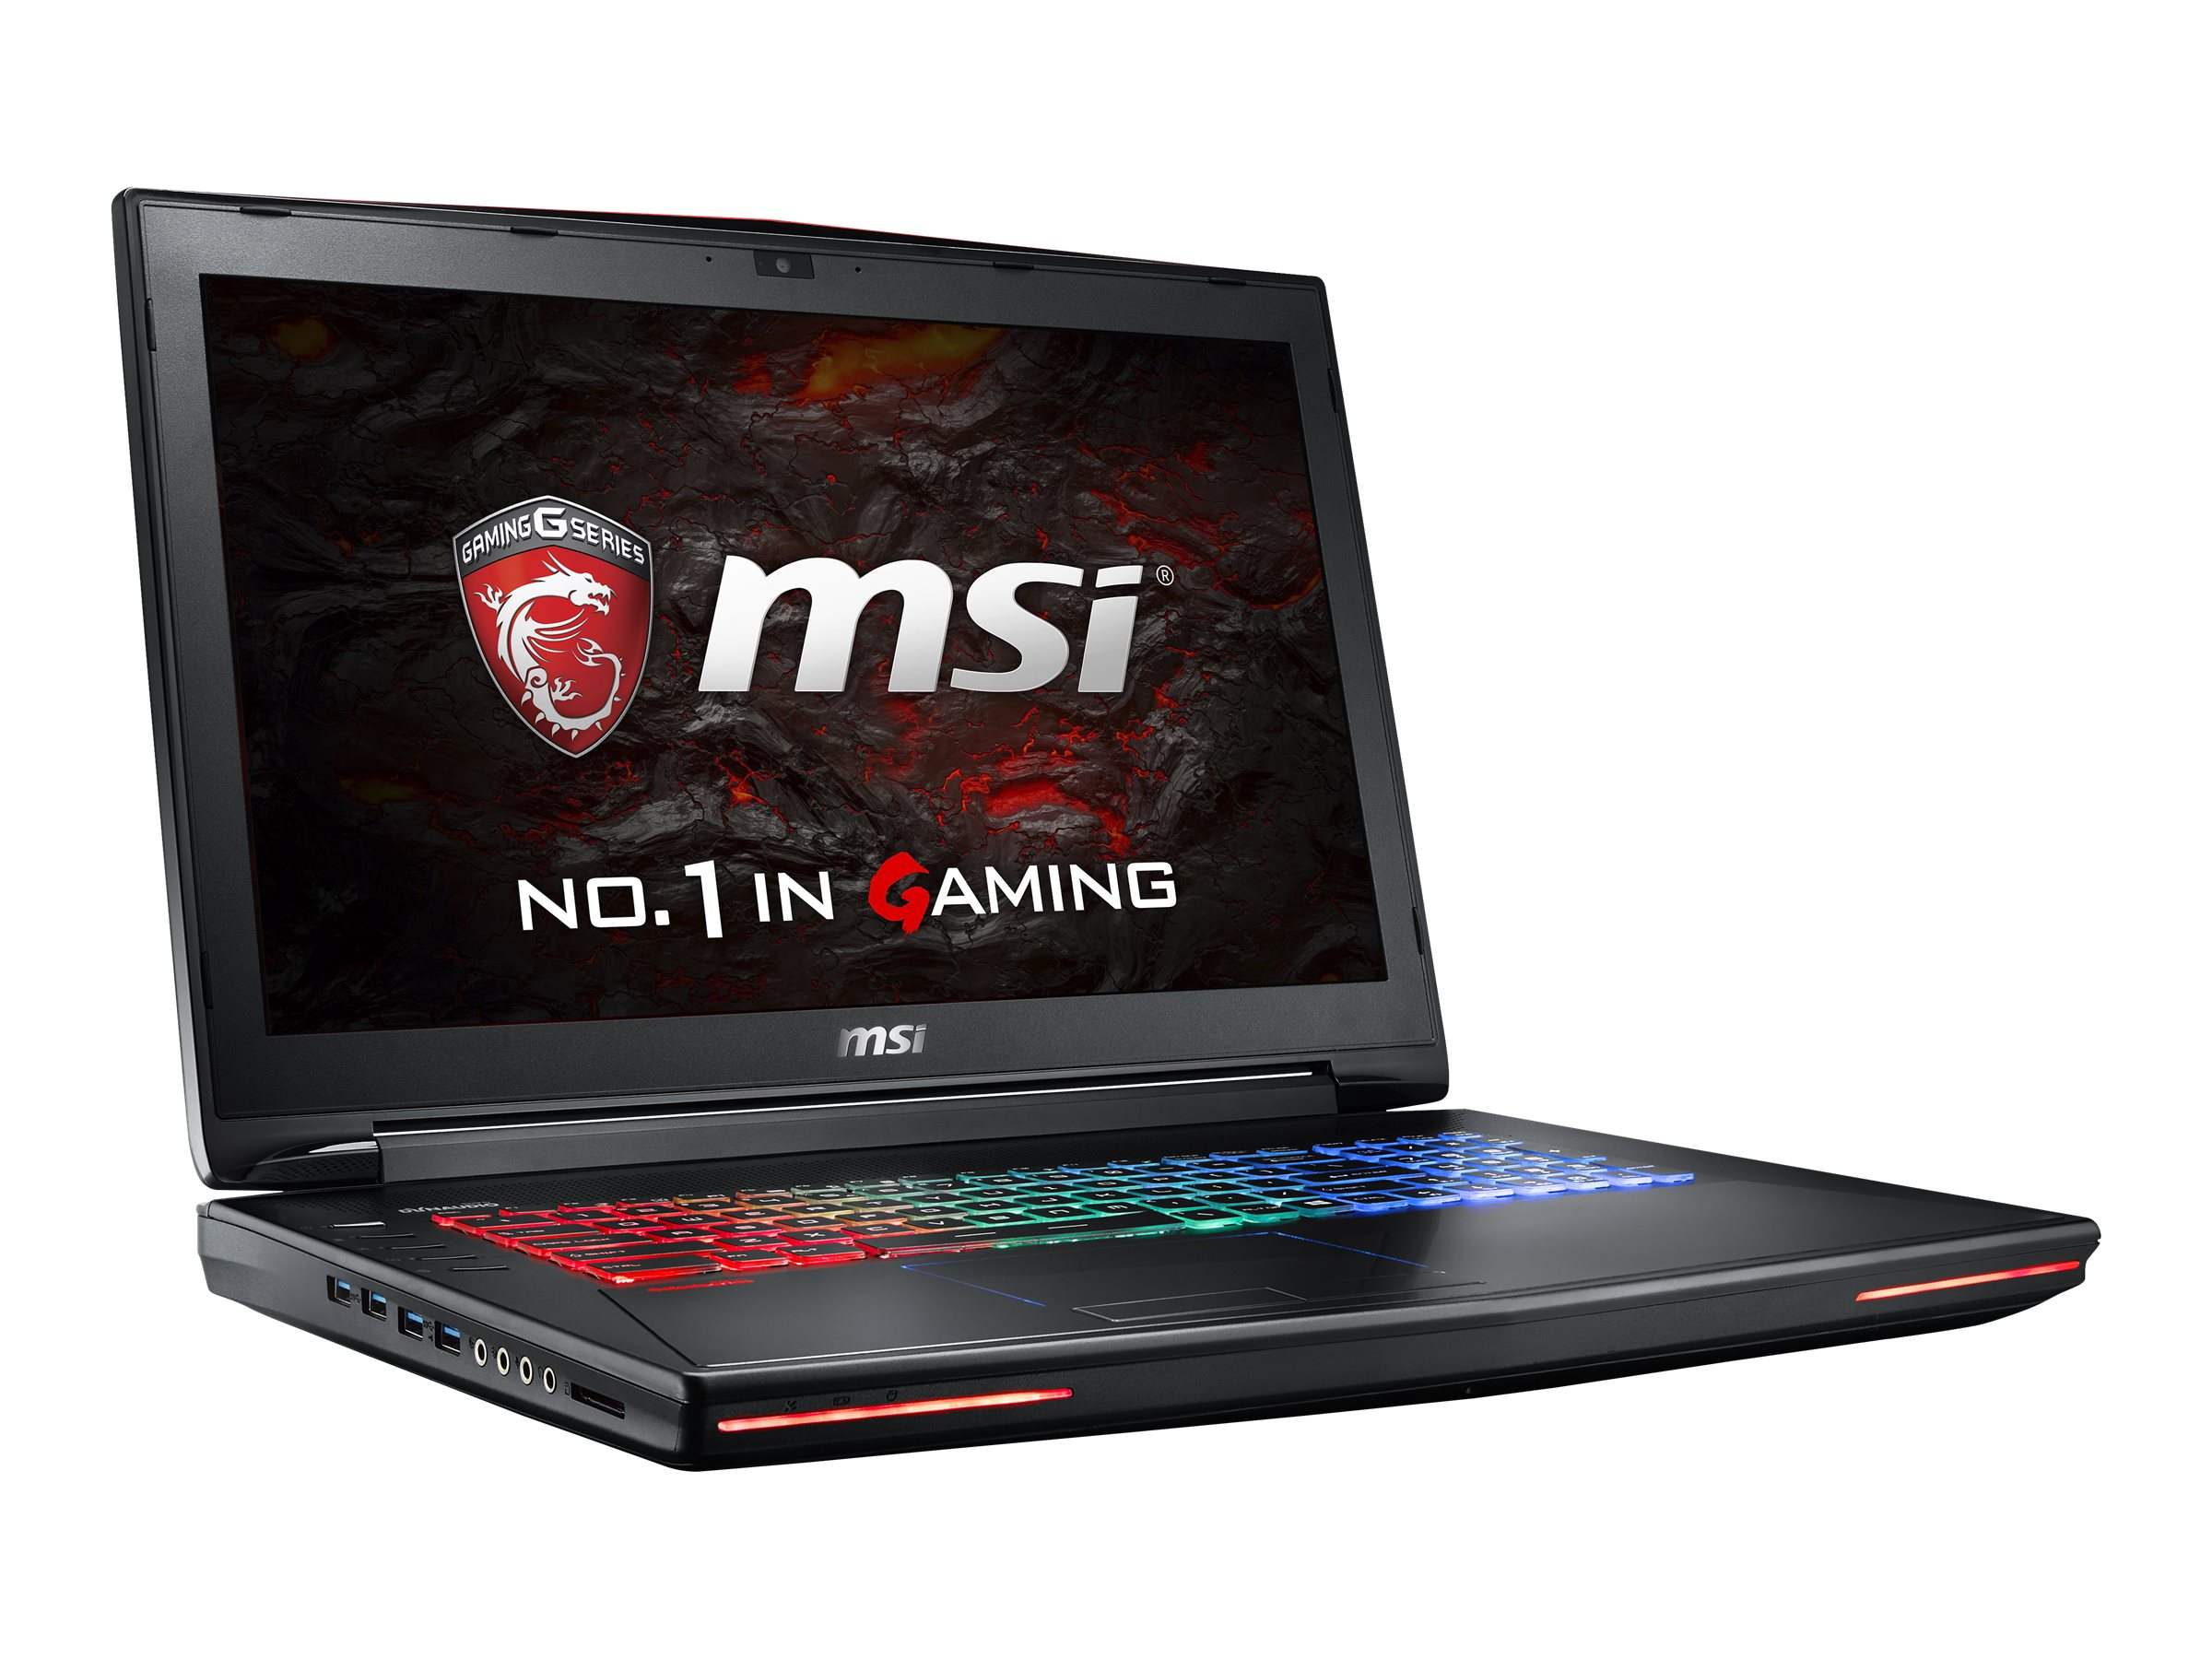 MSI Computer GT72VR286 Image 3